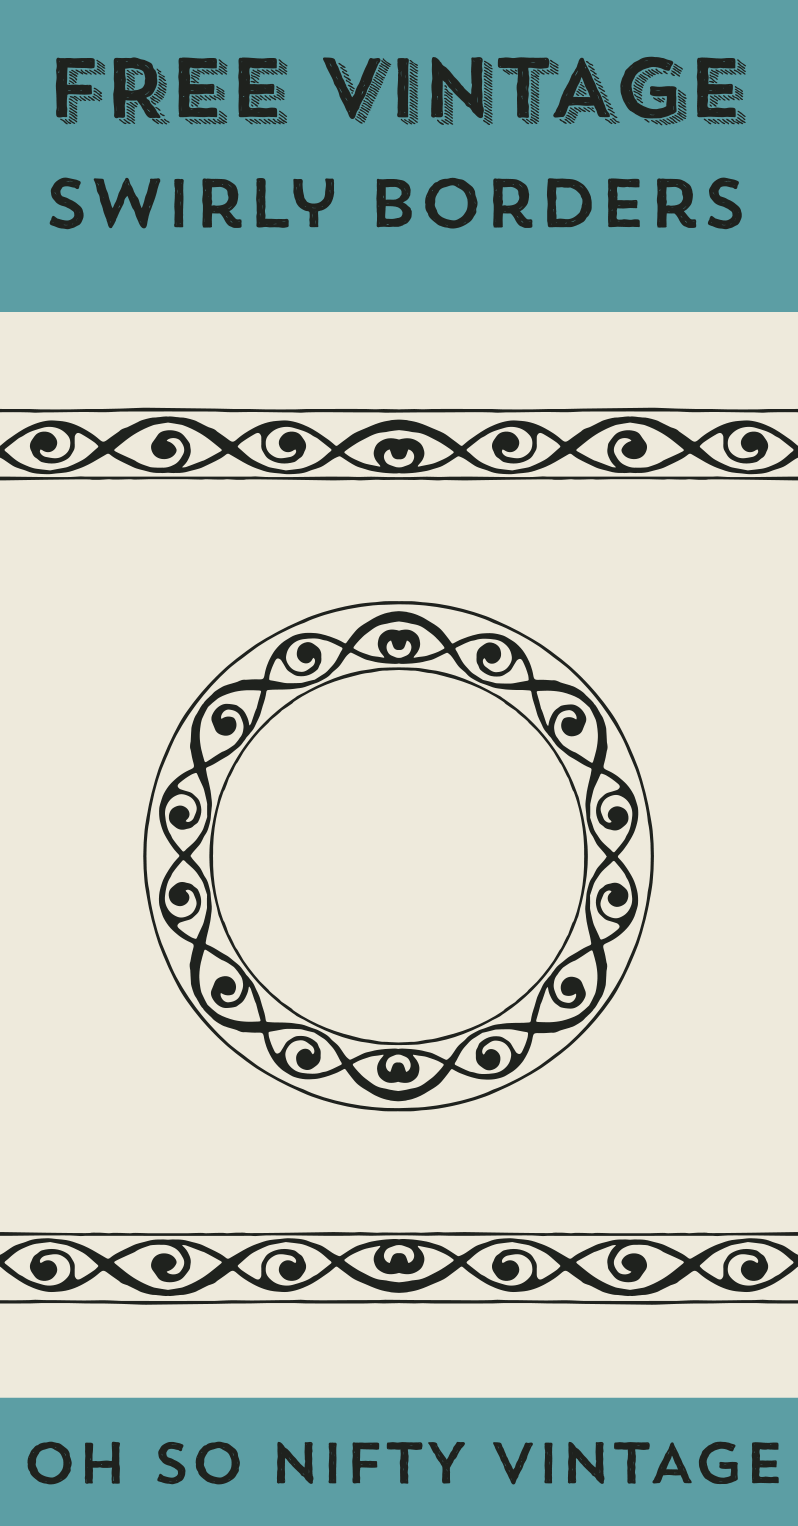 Royalty Free Clipart | Vintage Swirly Borders